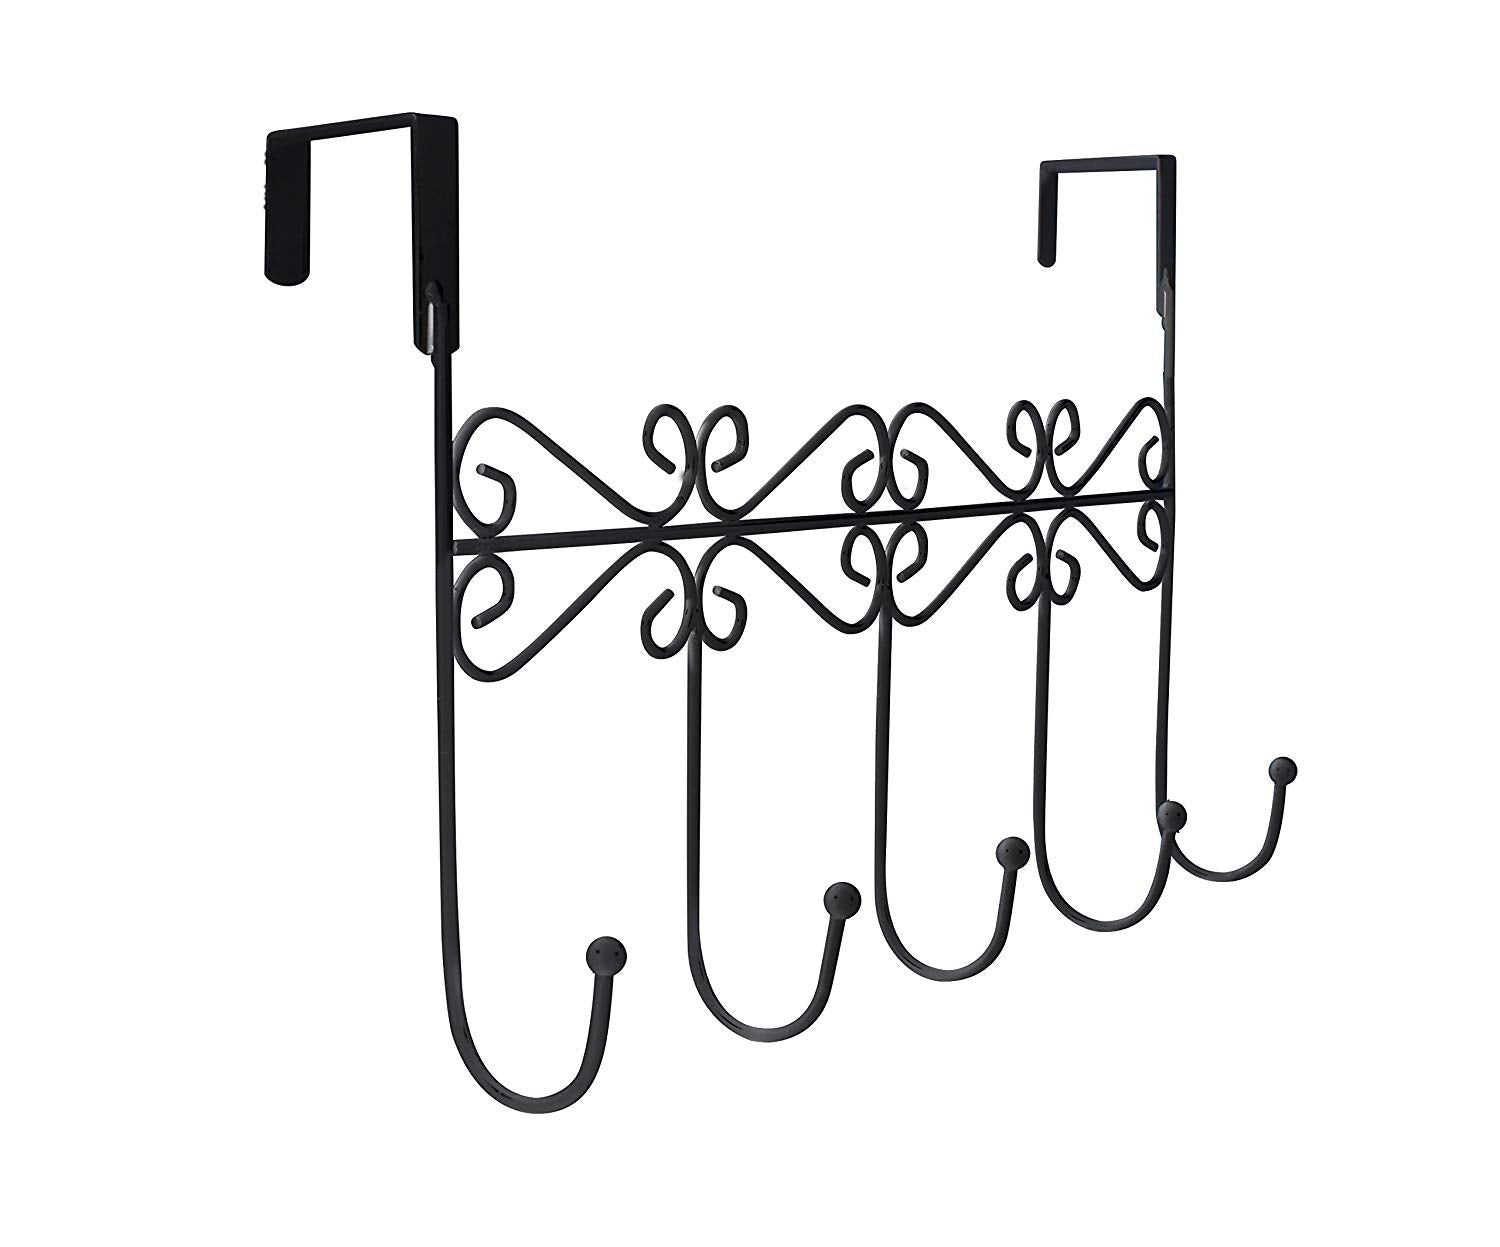 Lebogner Supreme Over the Door 5 Hook Metal Stylish Organizer Rack a Great Storage Addition to Your Home and Office, Great for Jackets, Coats, Bath Towels, Robes, Ties, - Black